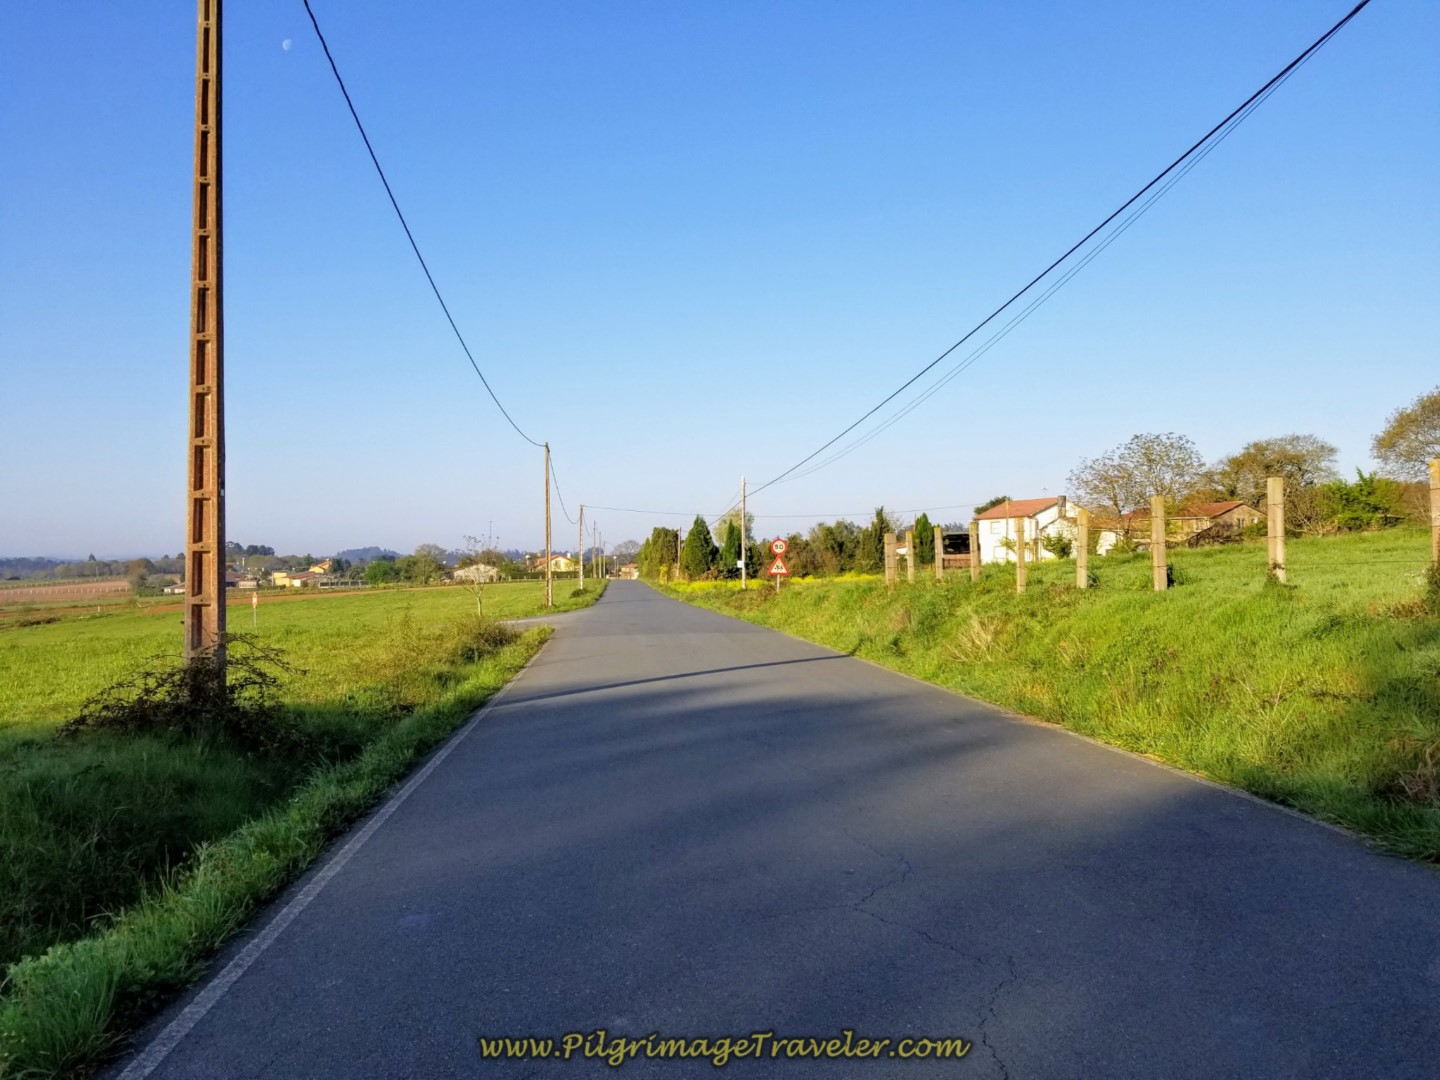 Long Paved Road Towards A Rúa on day seven of the Camino Inglés